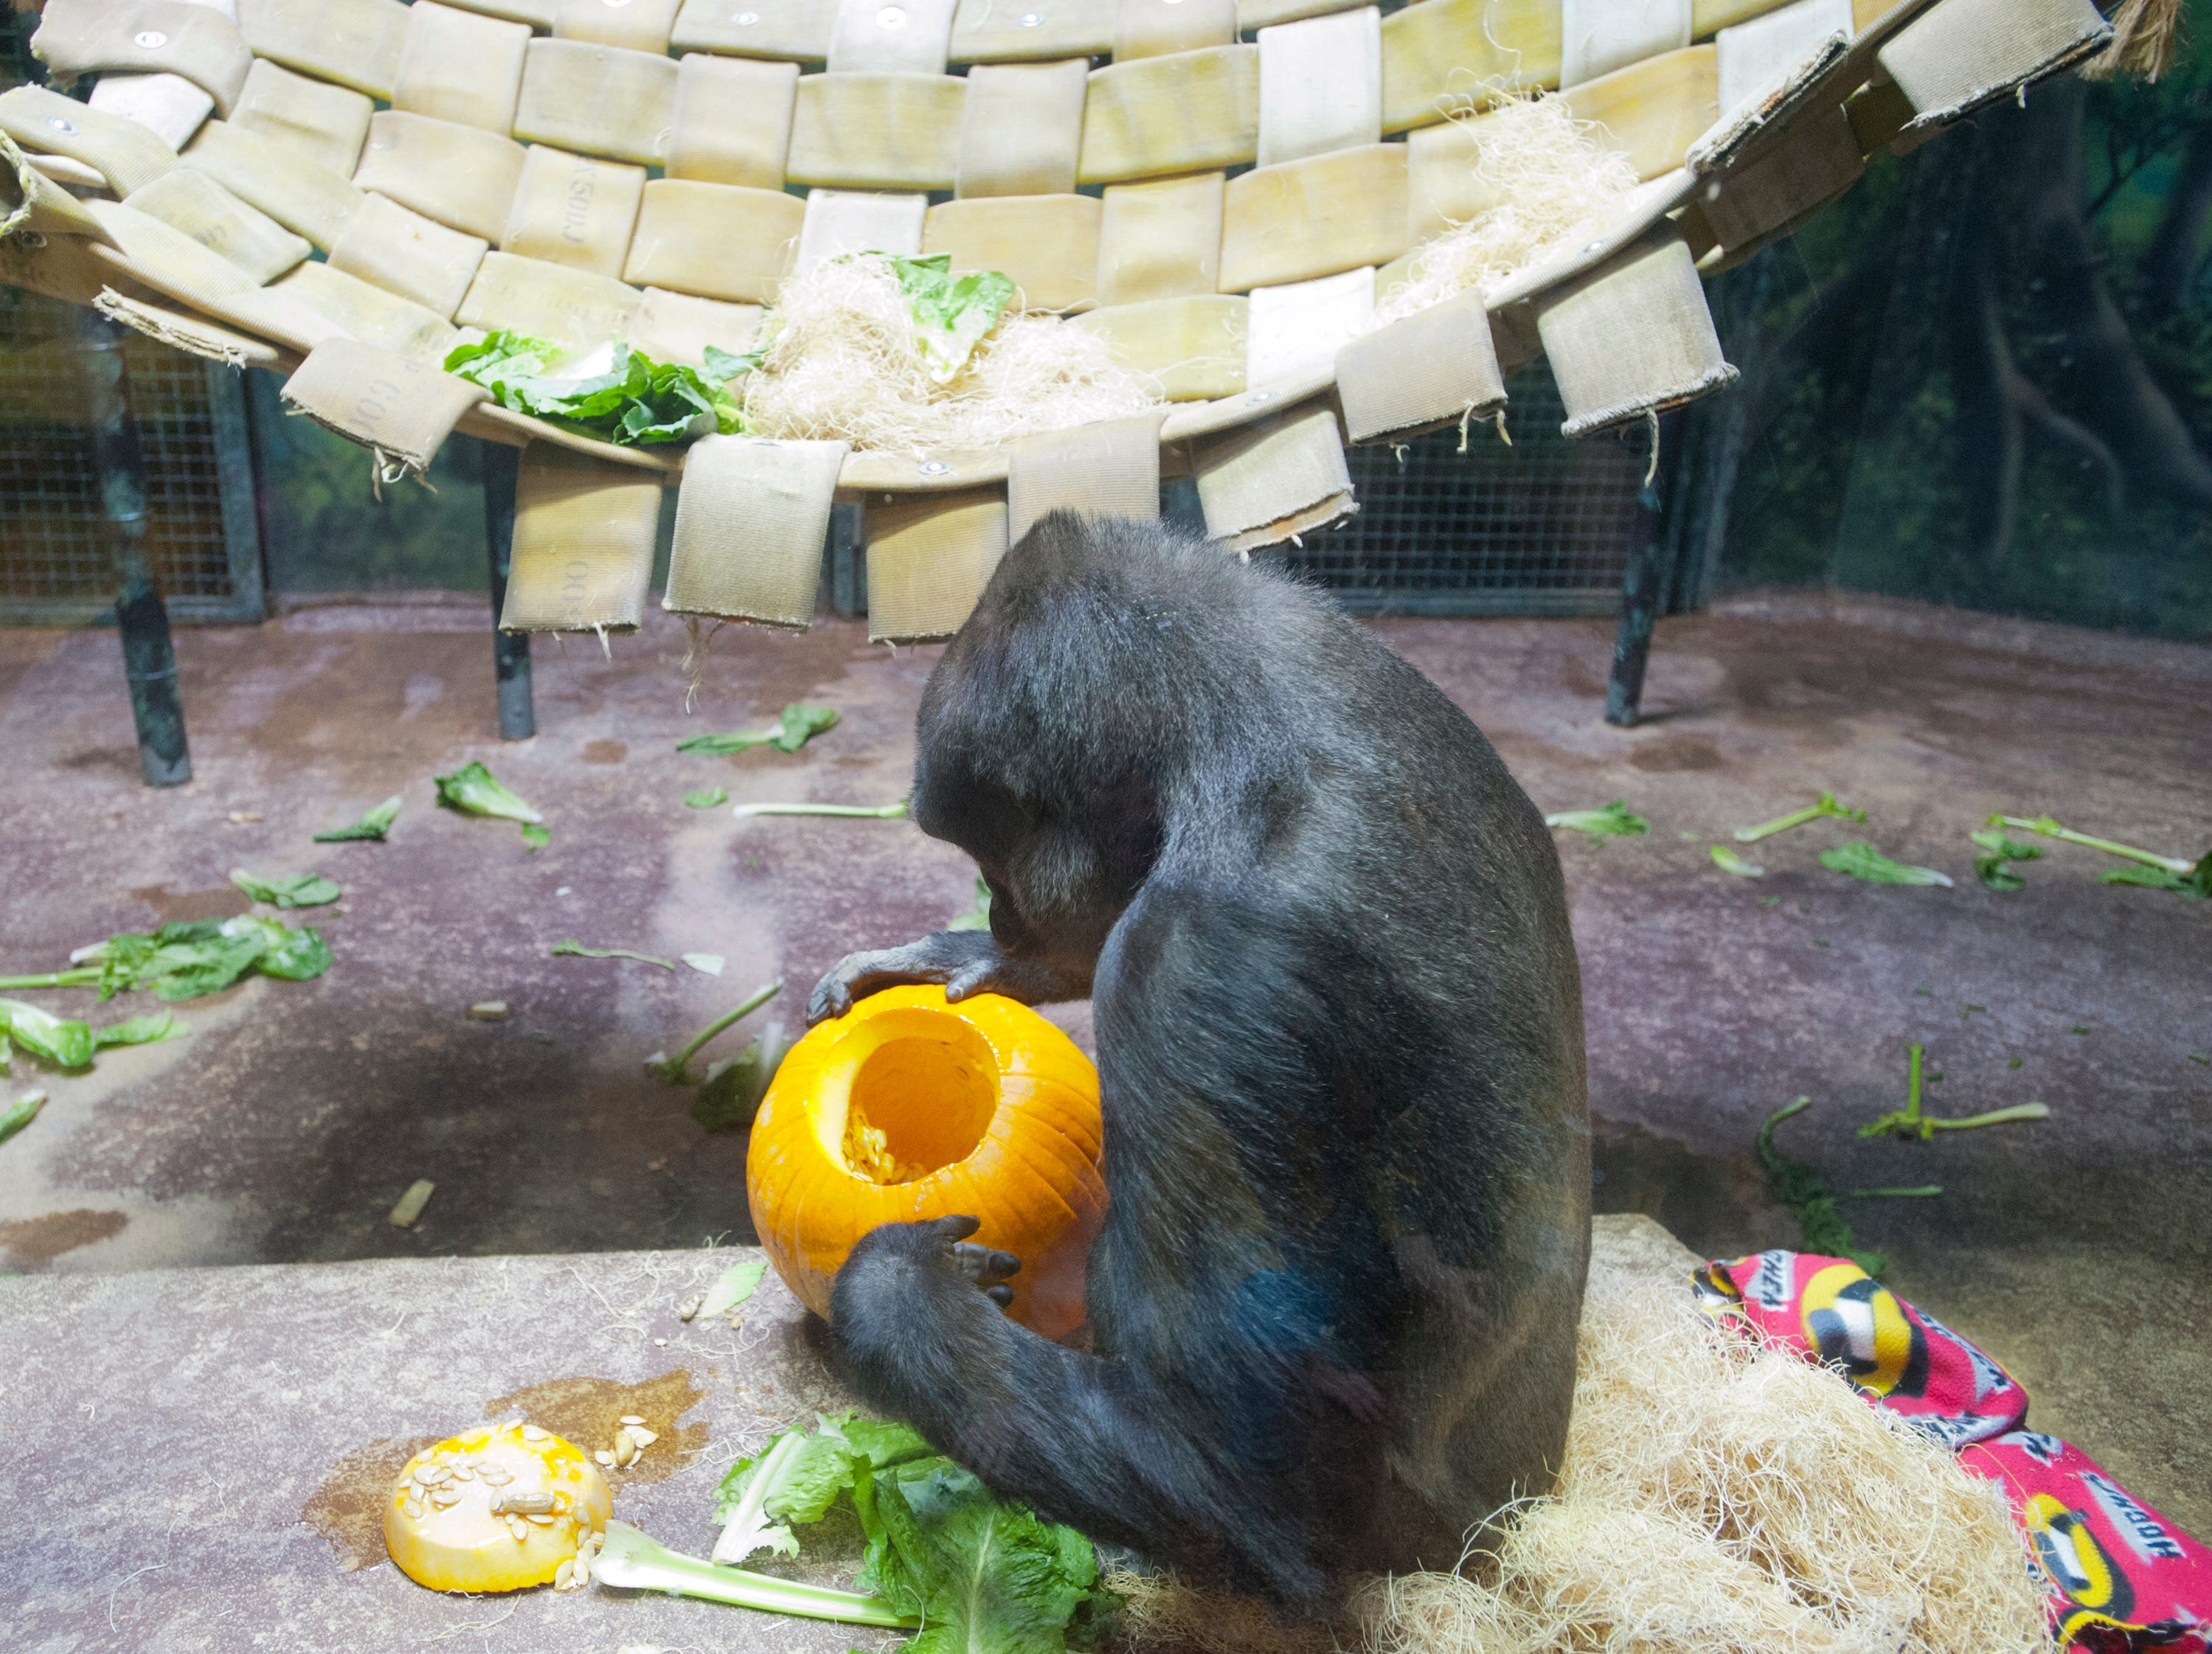 Bandia, a 21-year-old gorilla at the Louisville Zoo's annual pumpkin smash checks out the pumpkin below a hammock. The pumpkins being fed to the animals are from the zoo's Halloween event. November 04, 2018